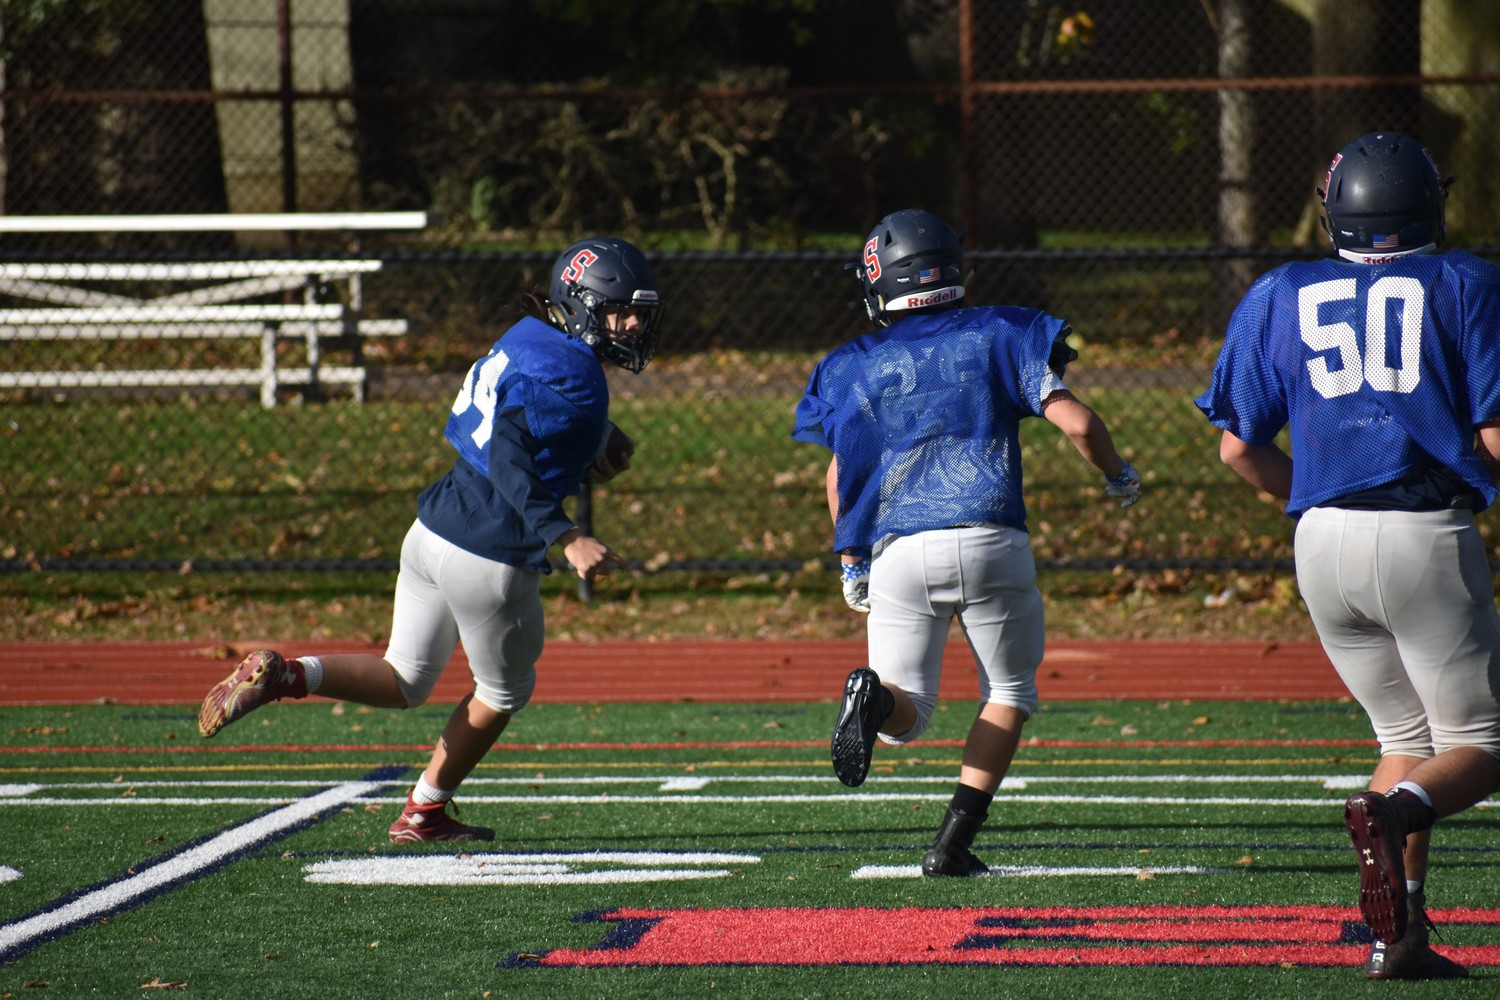 Medford, left, got ready to evade a tackler before scurrying down the sideline during a practice on Oct. 29.